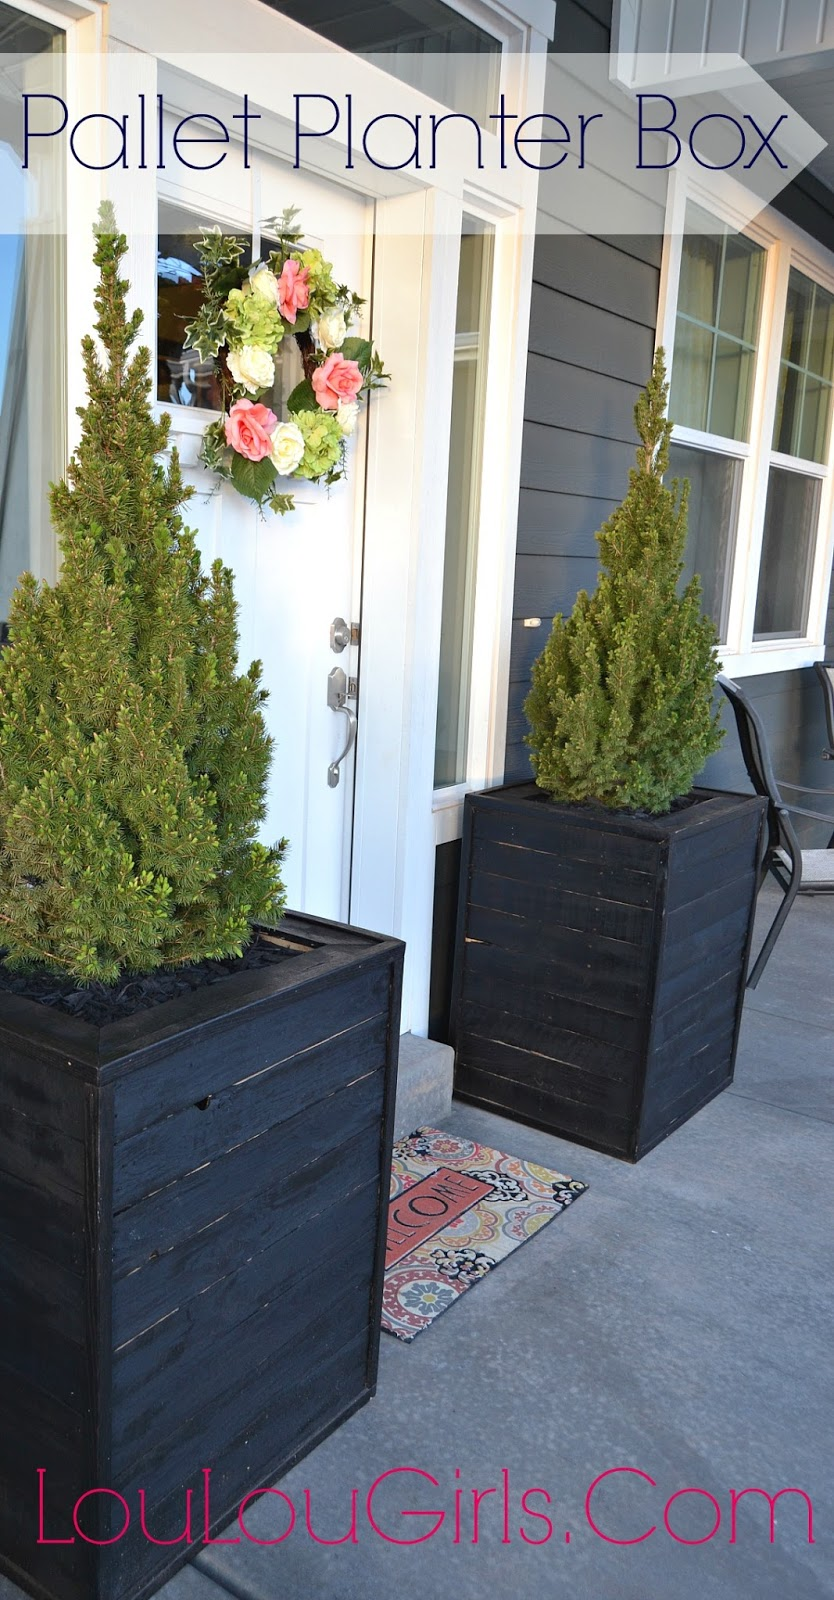 Diy massive planter boxes made from pallets lou lou girls for Jj fish n chicken